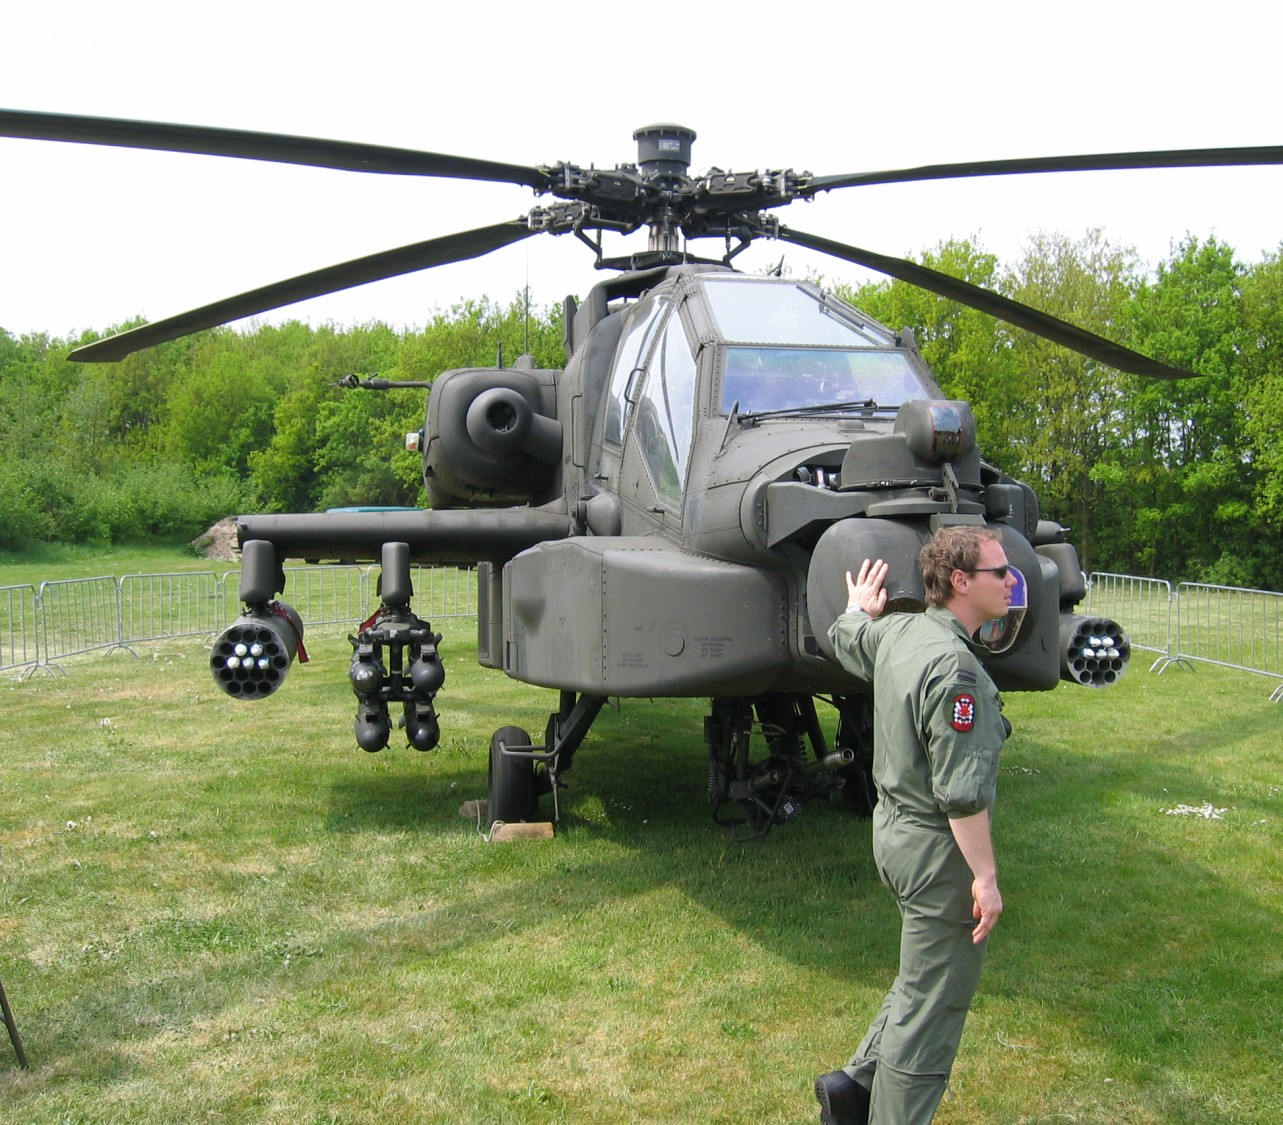 cost of an apache helicopter with File Apache Ah 64 on Eurocopter EC725 together with 225517 Death Star Reflections besides T129 Mangusta also 50 Best Full Sleeve Tattoos moreover Jets Name Is Just Plane Awesome.